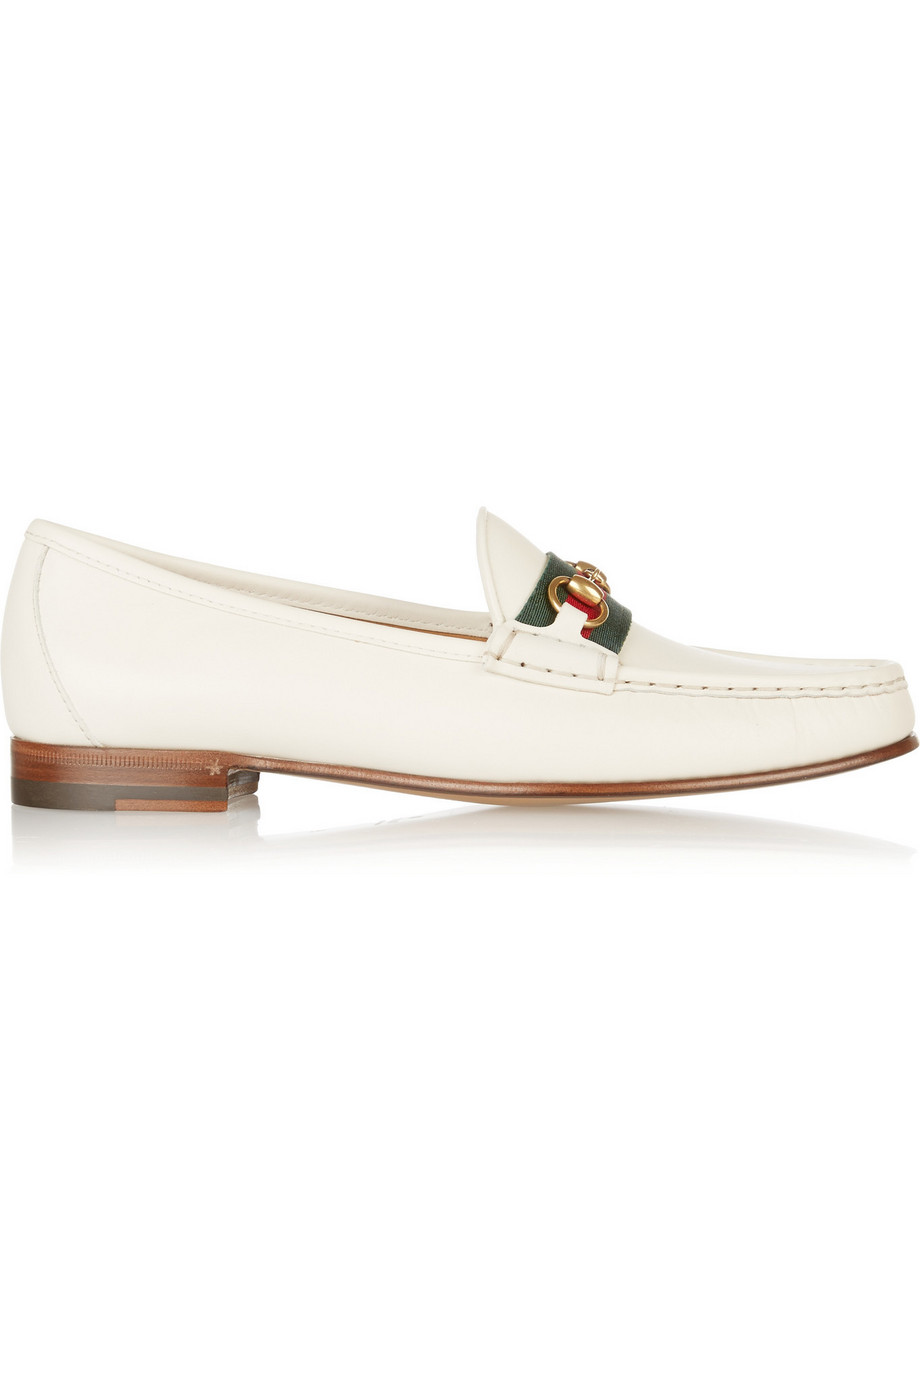 Gucci Horsebit-Detailed Leather Loafers, Off-White, Women's US Size: 5.5, Size: 36